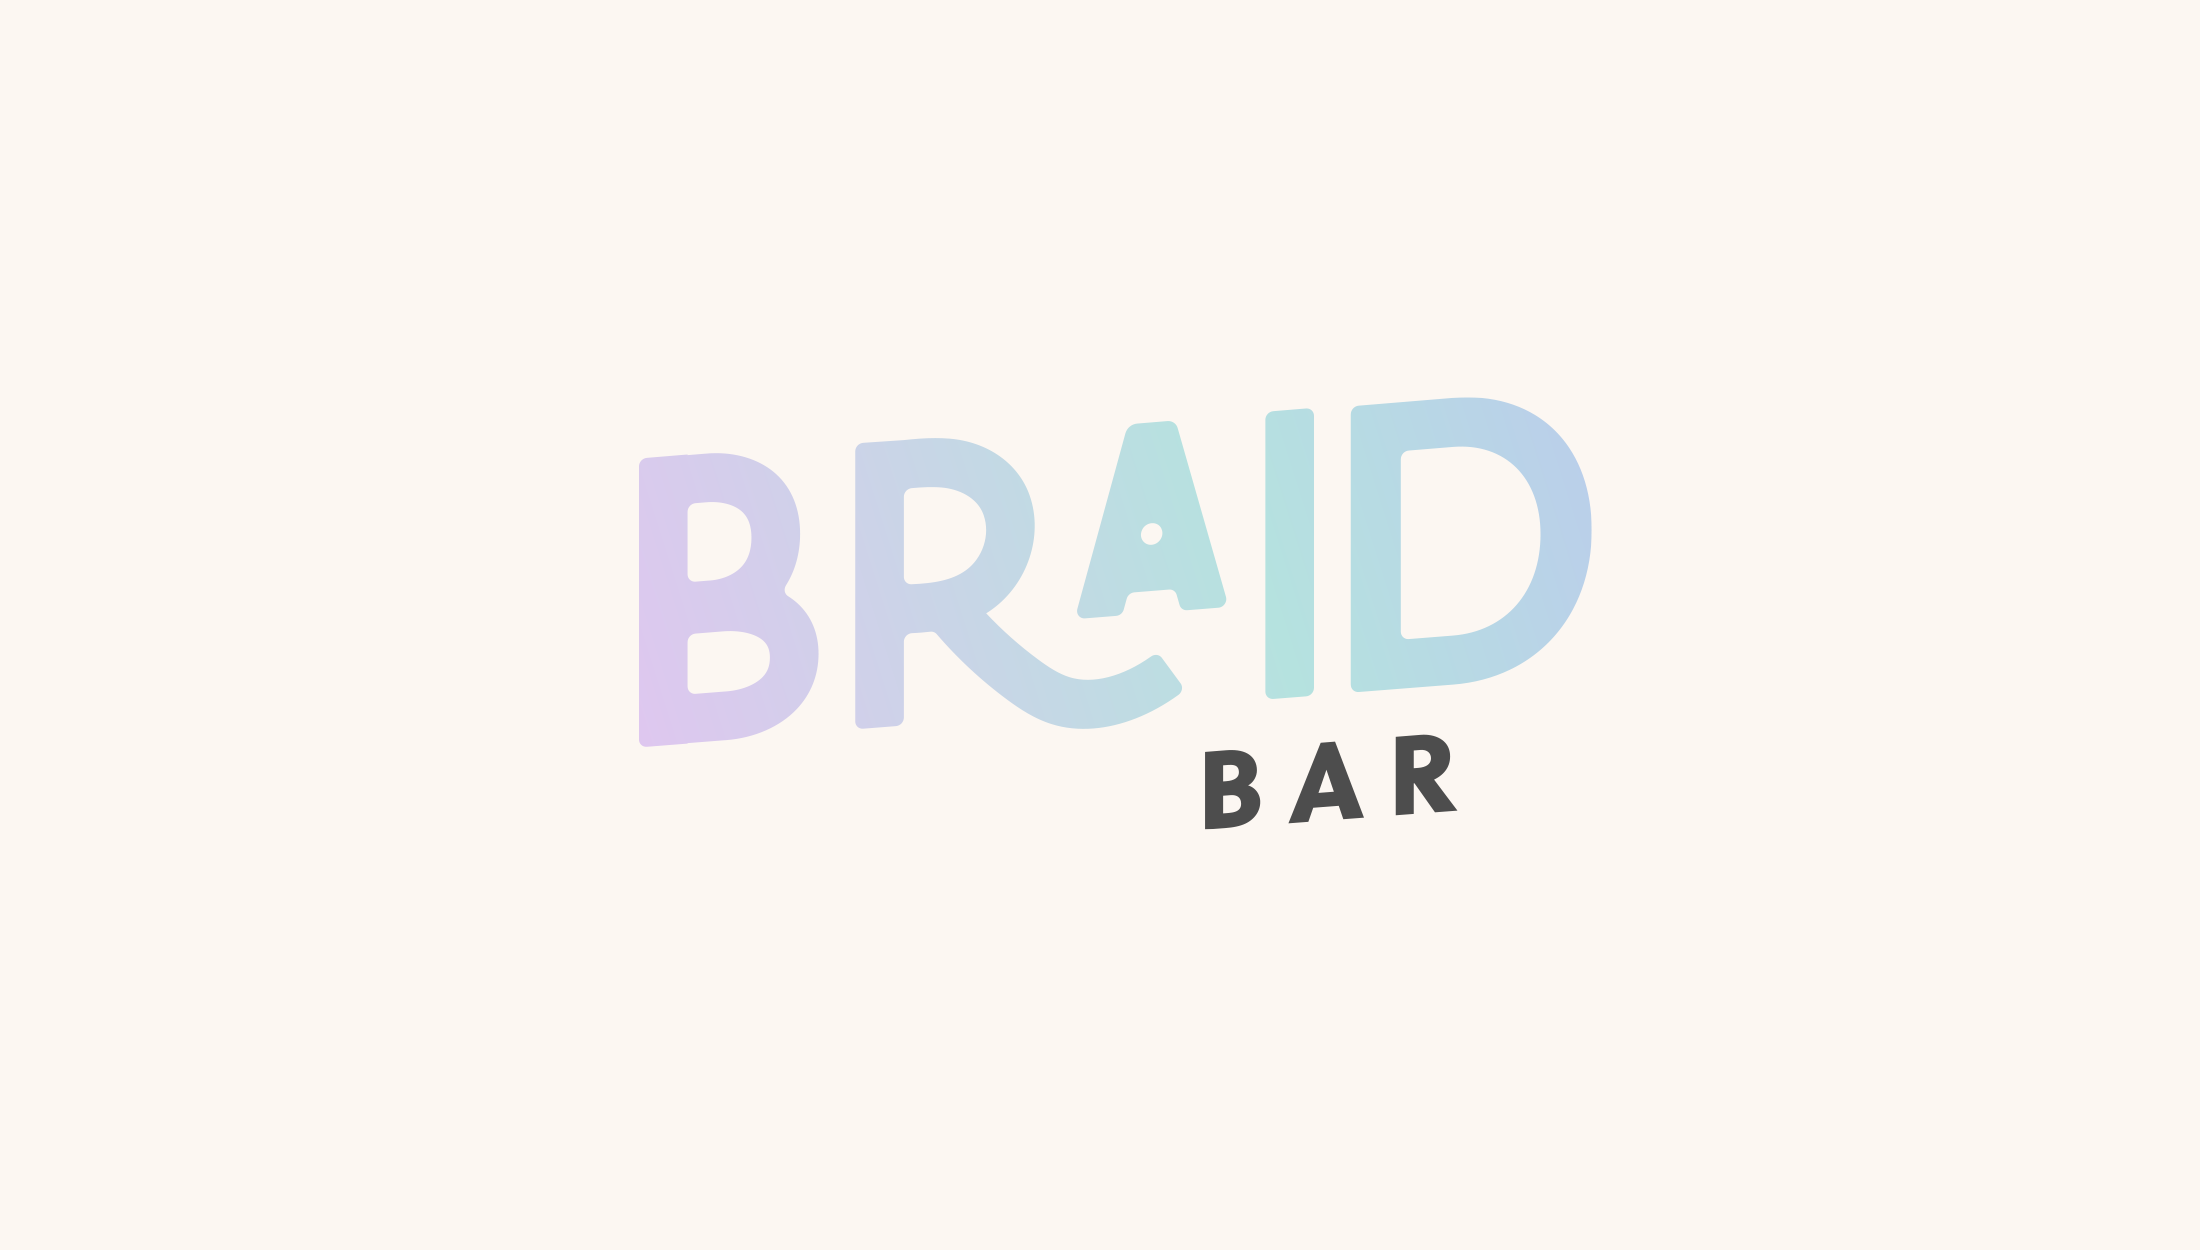 Logo design for Braid Bar, providing a premium experience and high-quality braiding services - designed by Wiltshire-based graphic designer, Kaye Huett